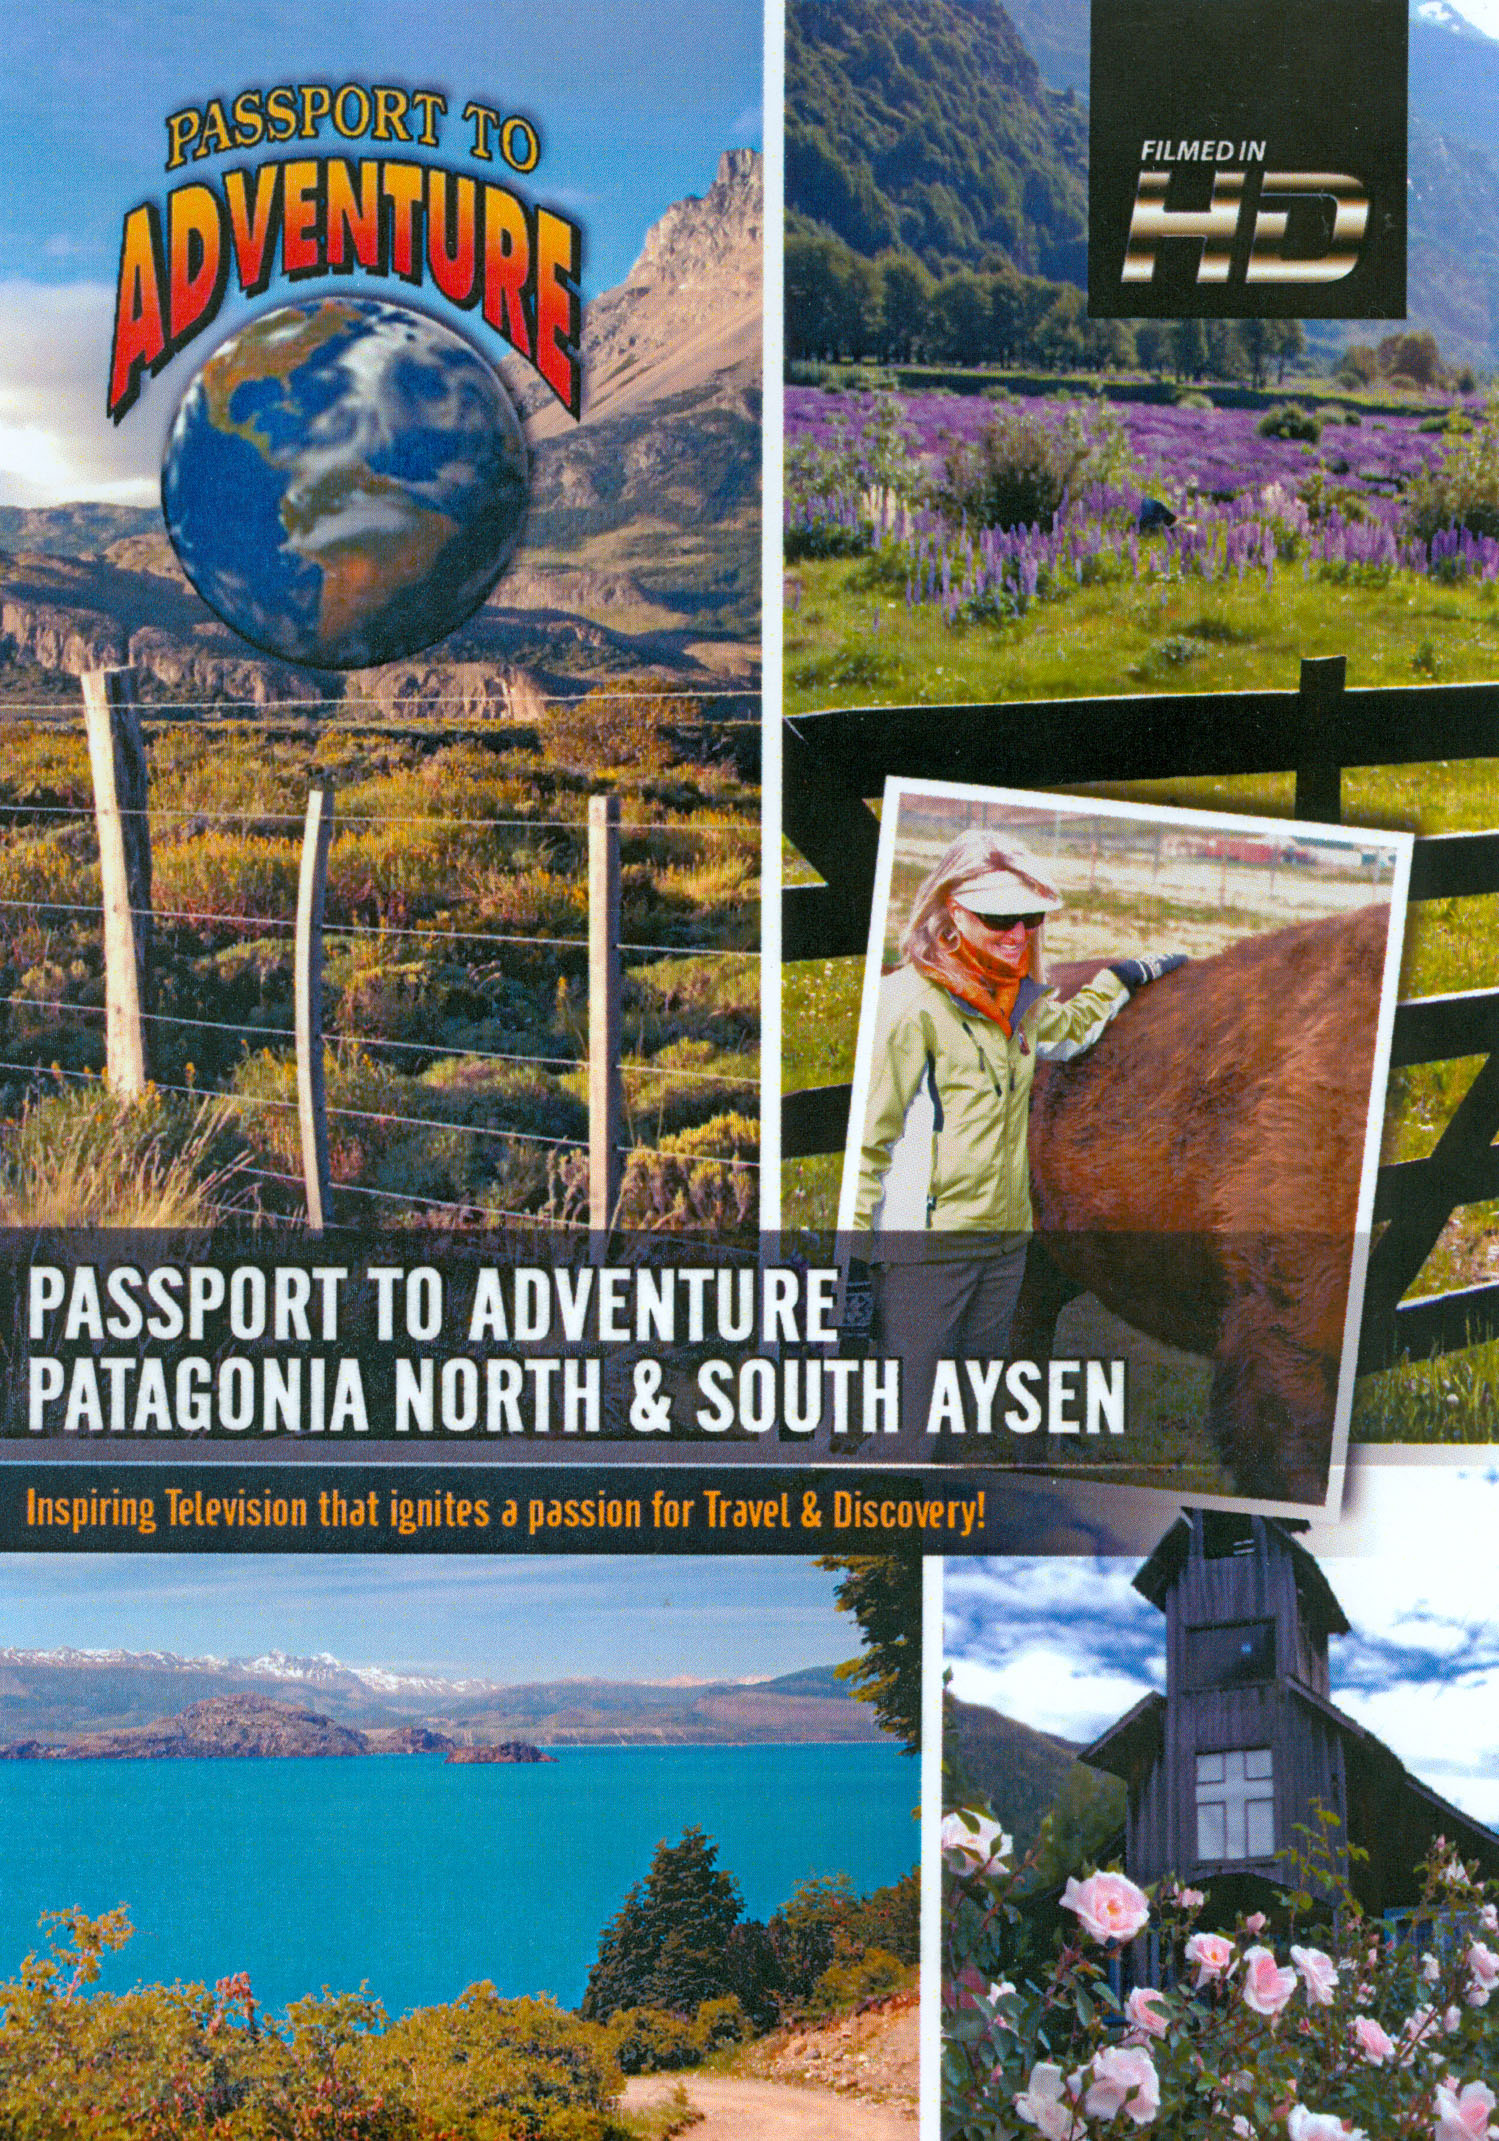 Passport to Adventure: Patagonia North & South Aysen